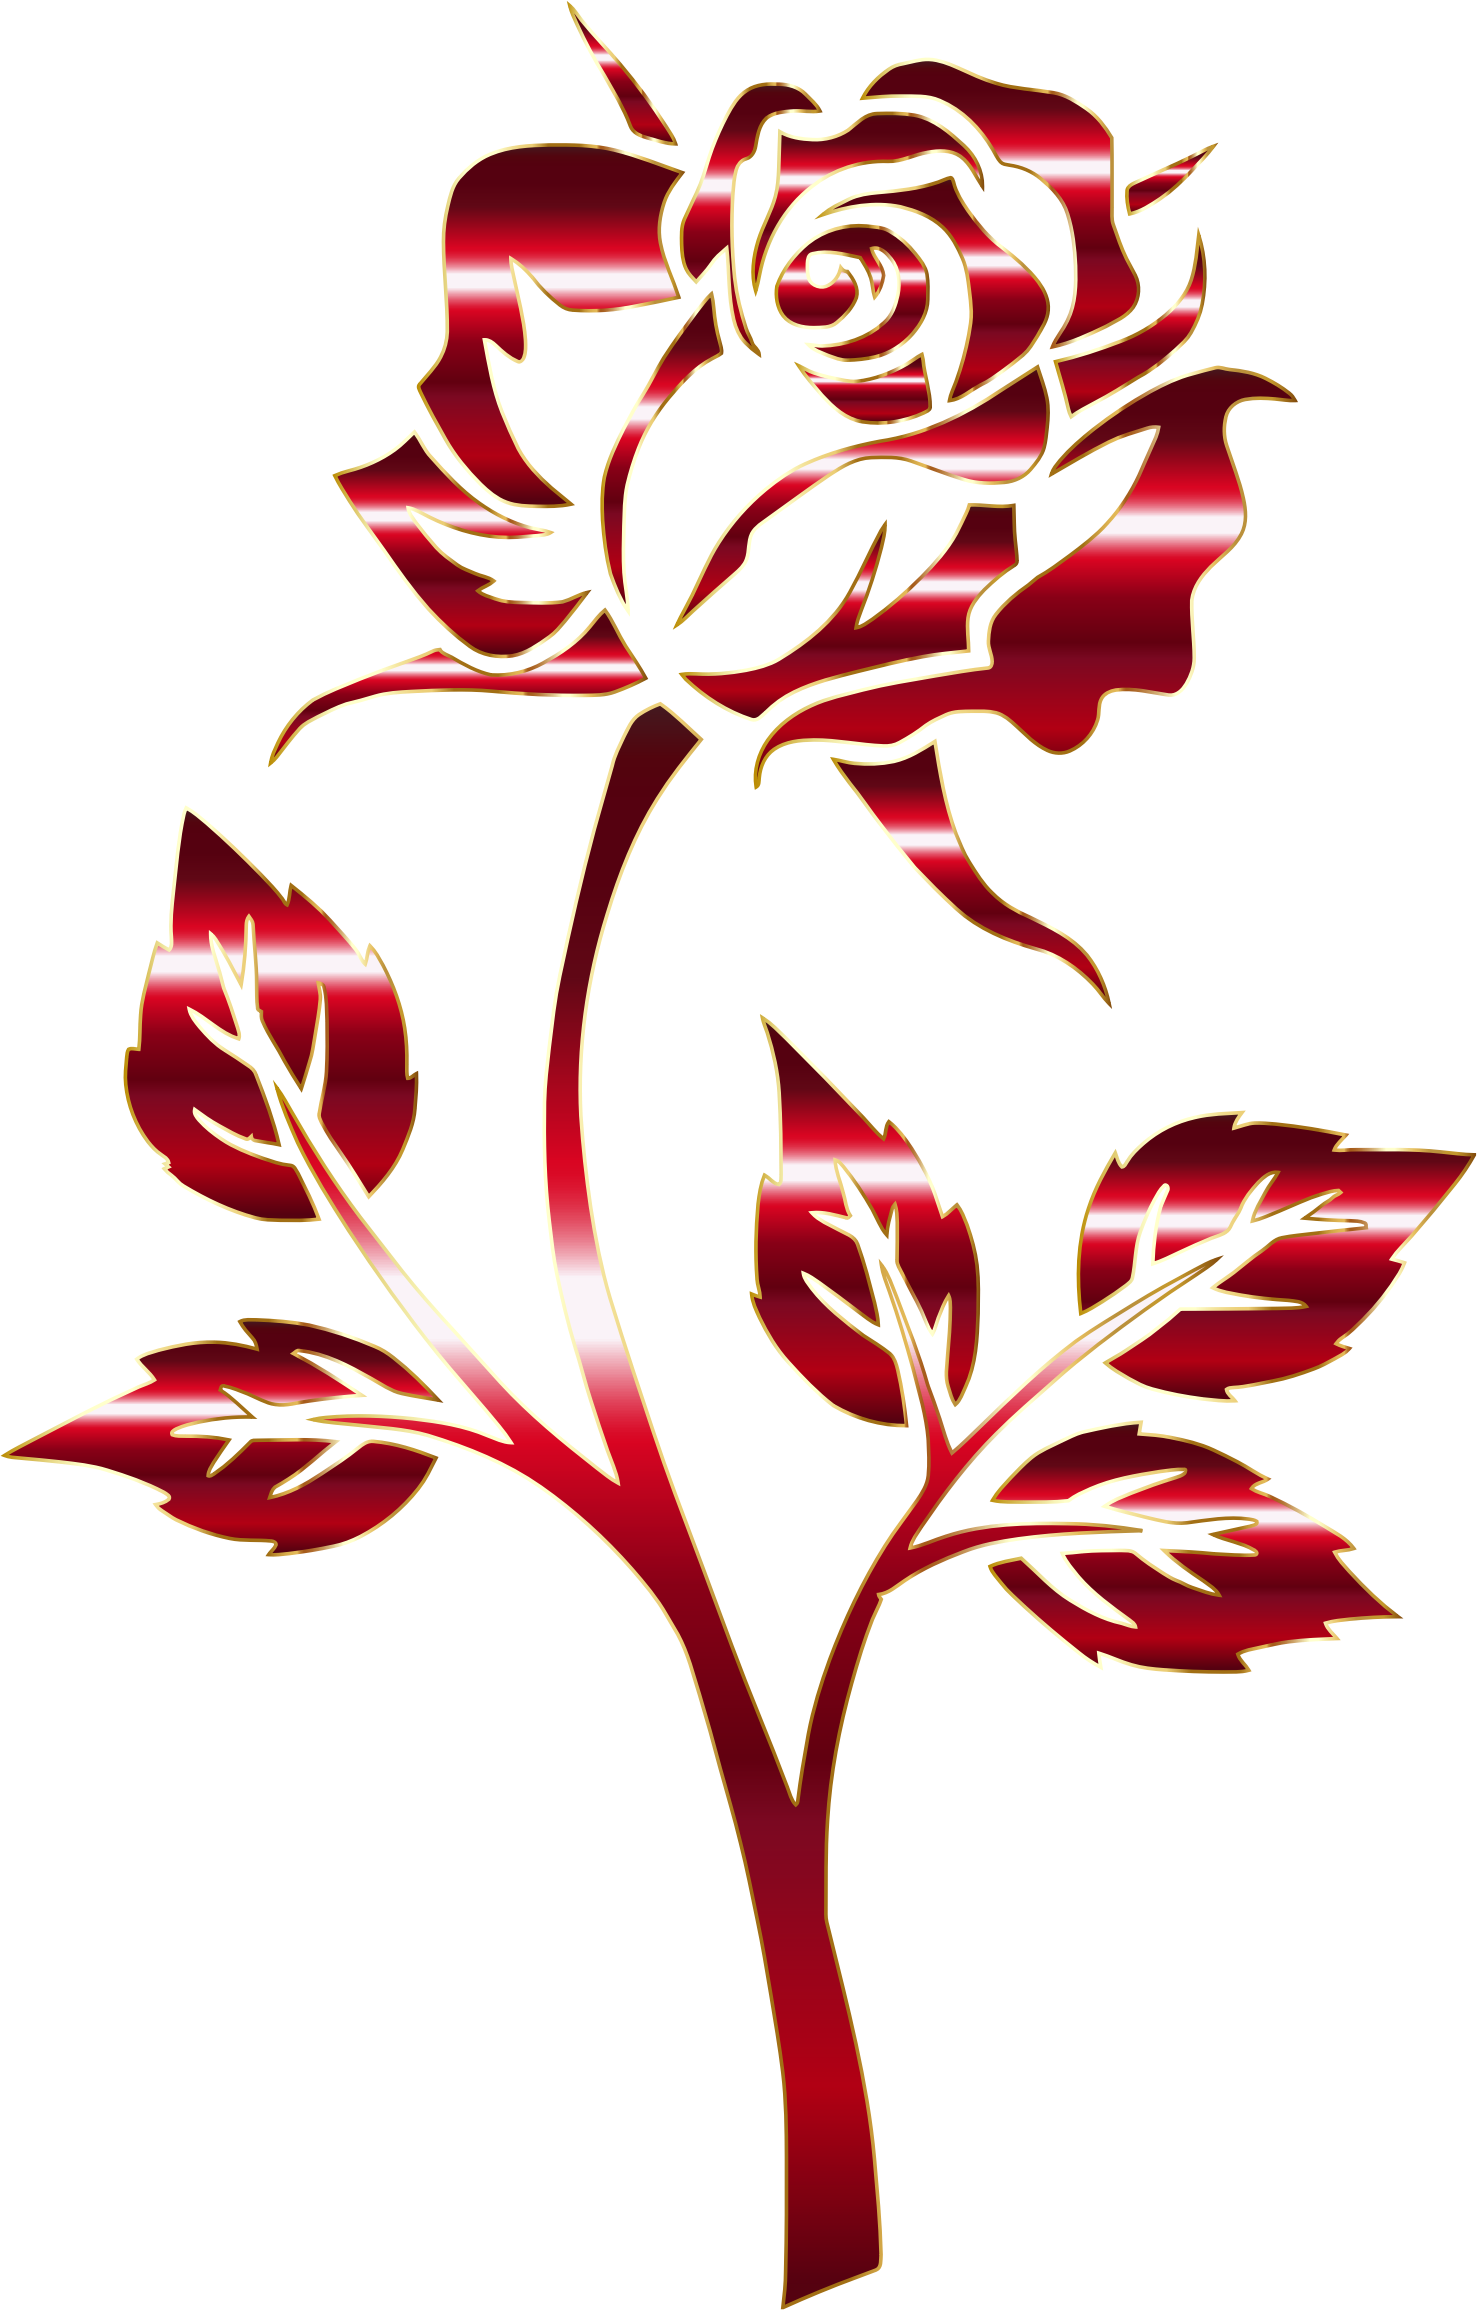 Crimson Rose Silhouette Variation 2 No Background (With ...